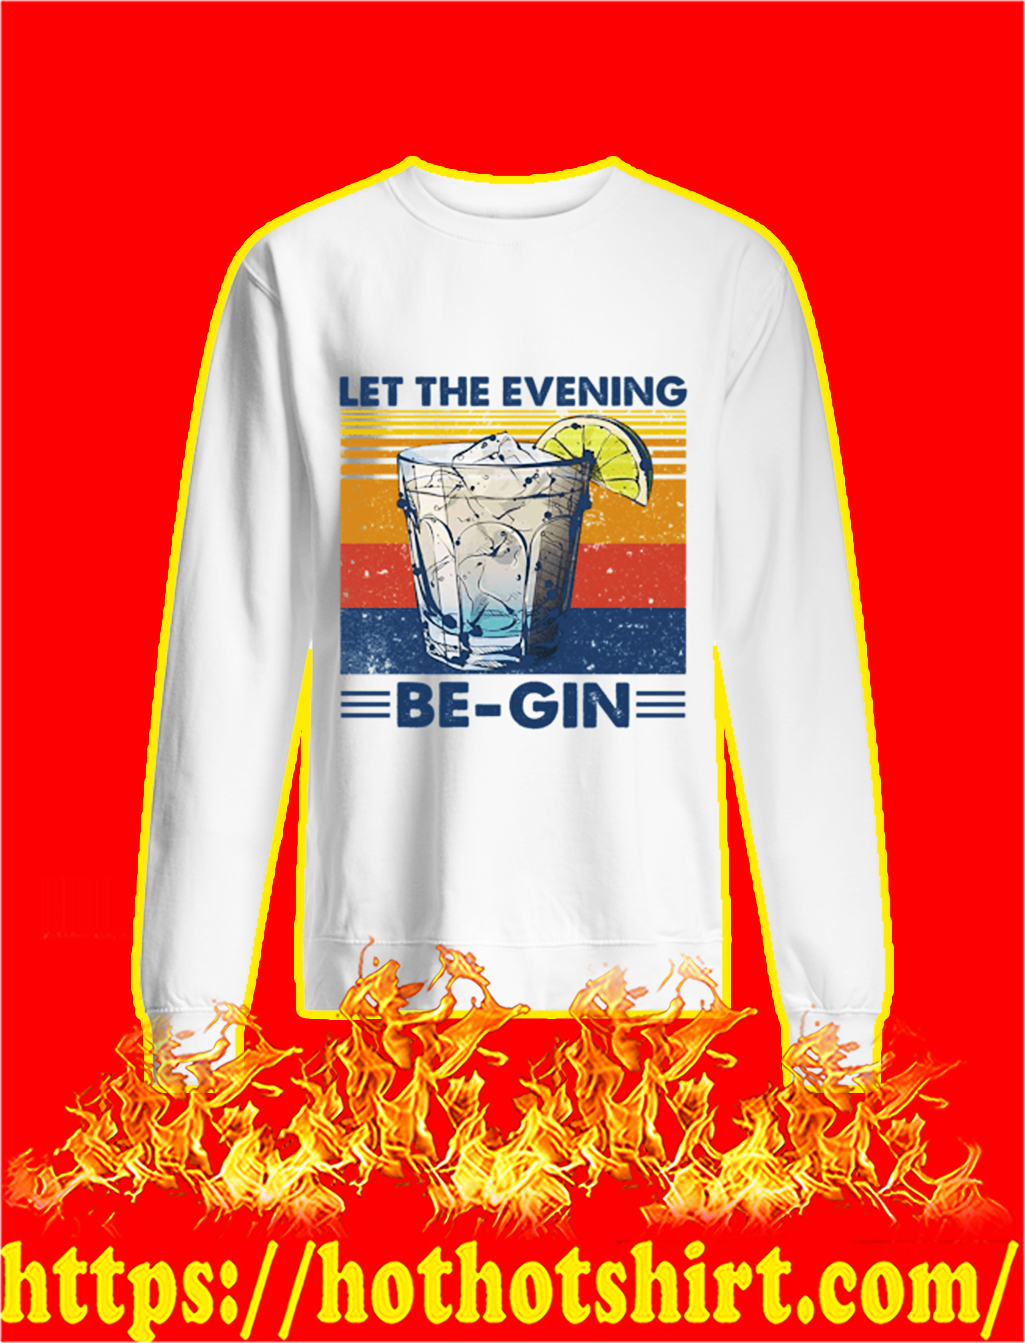 Let the evening be-gin sweatshirt